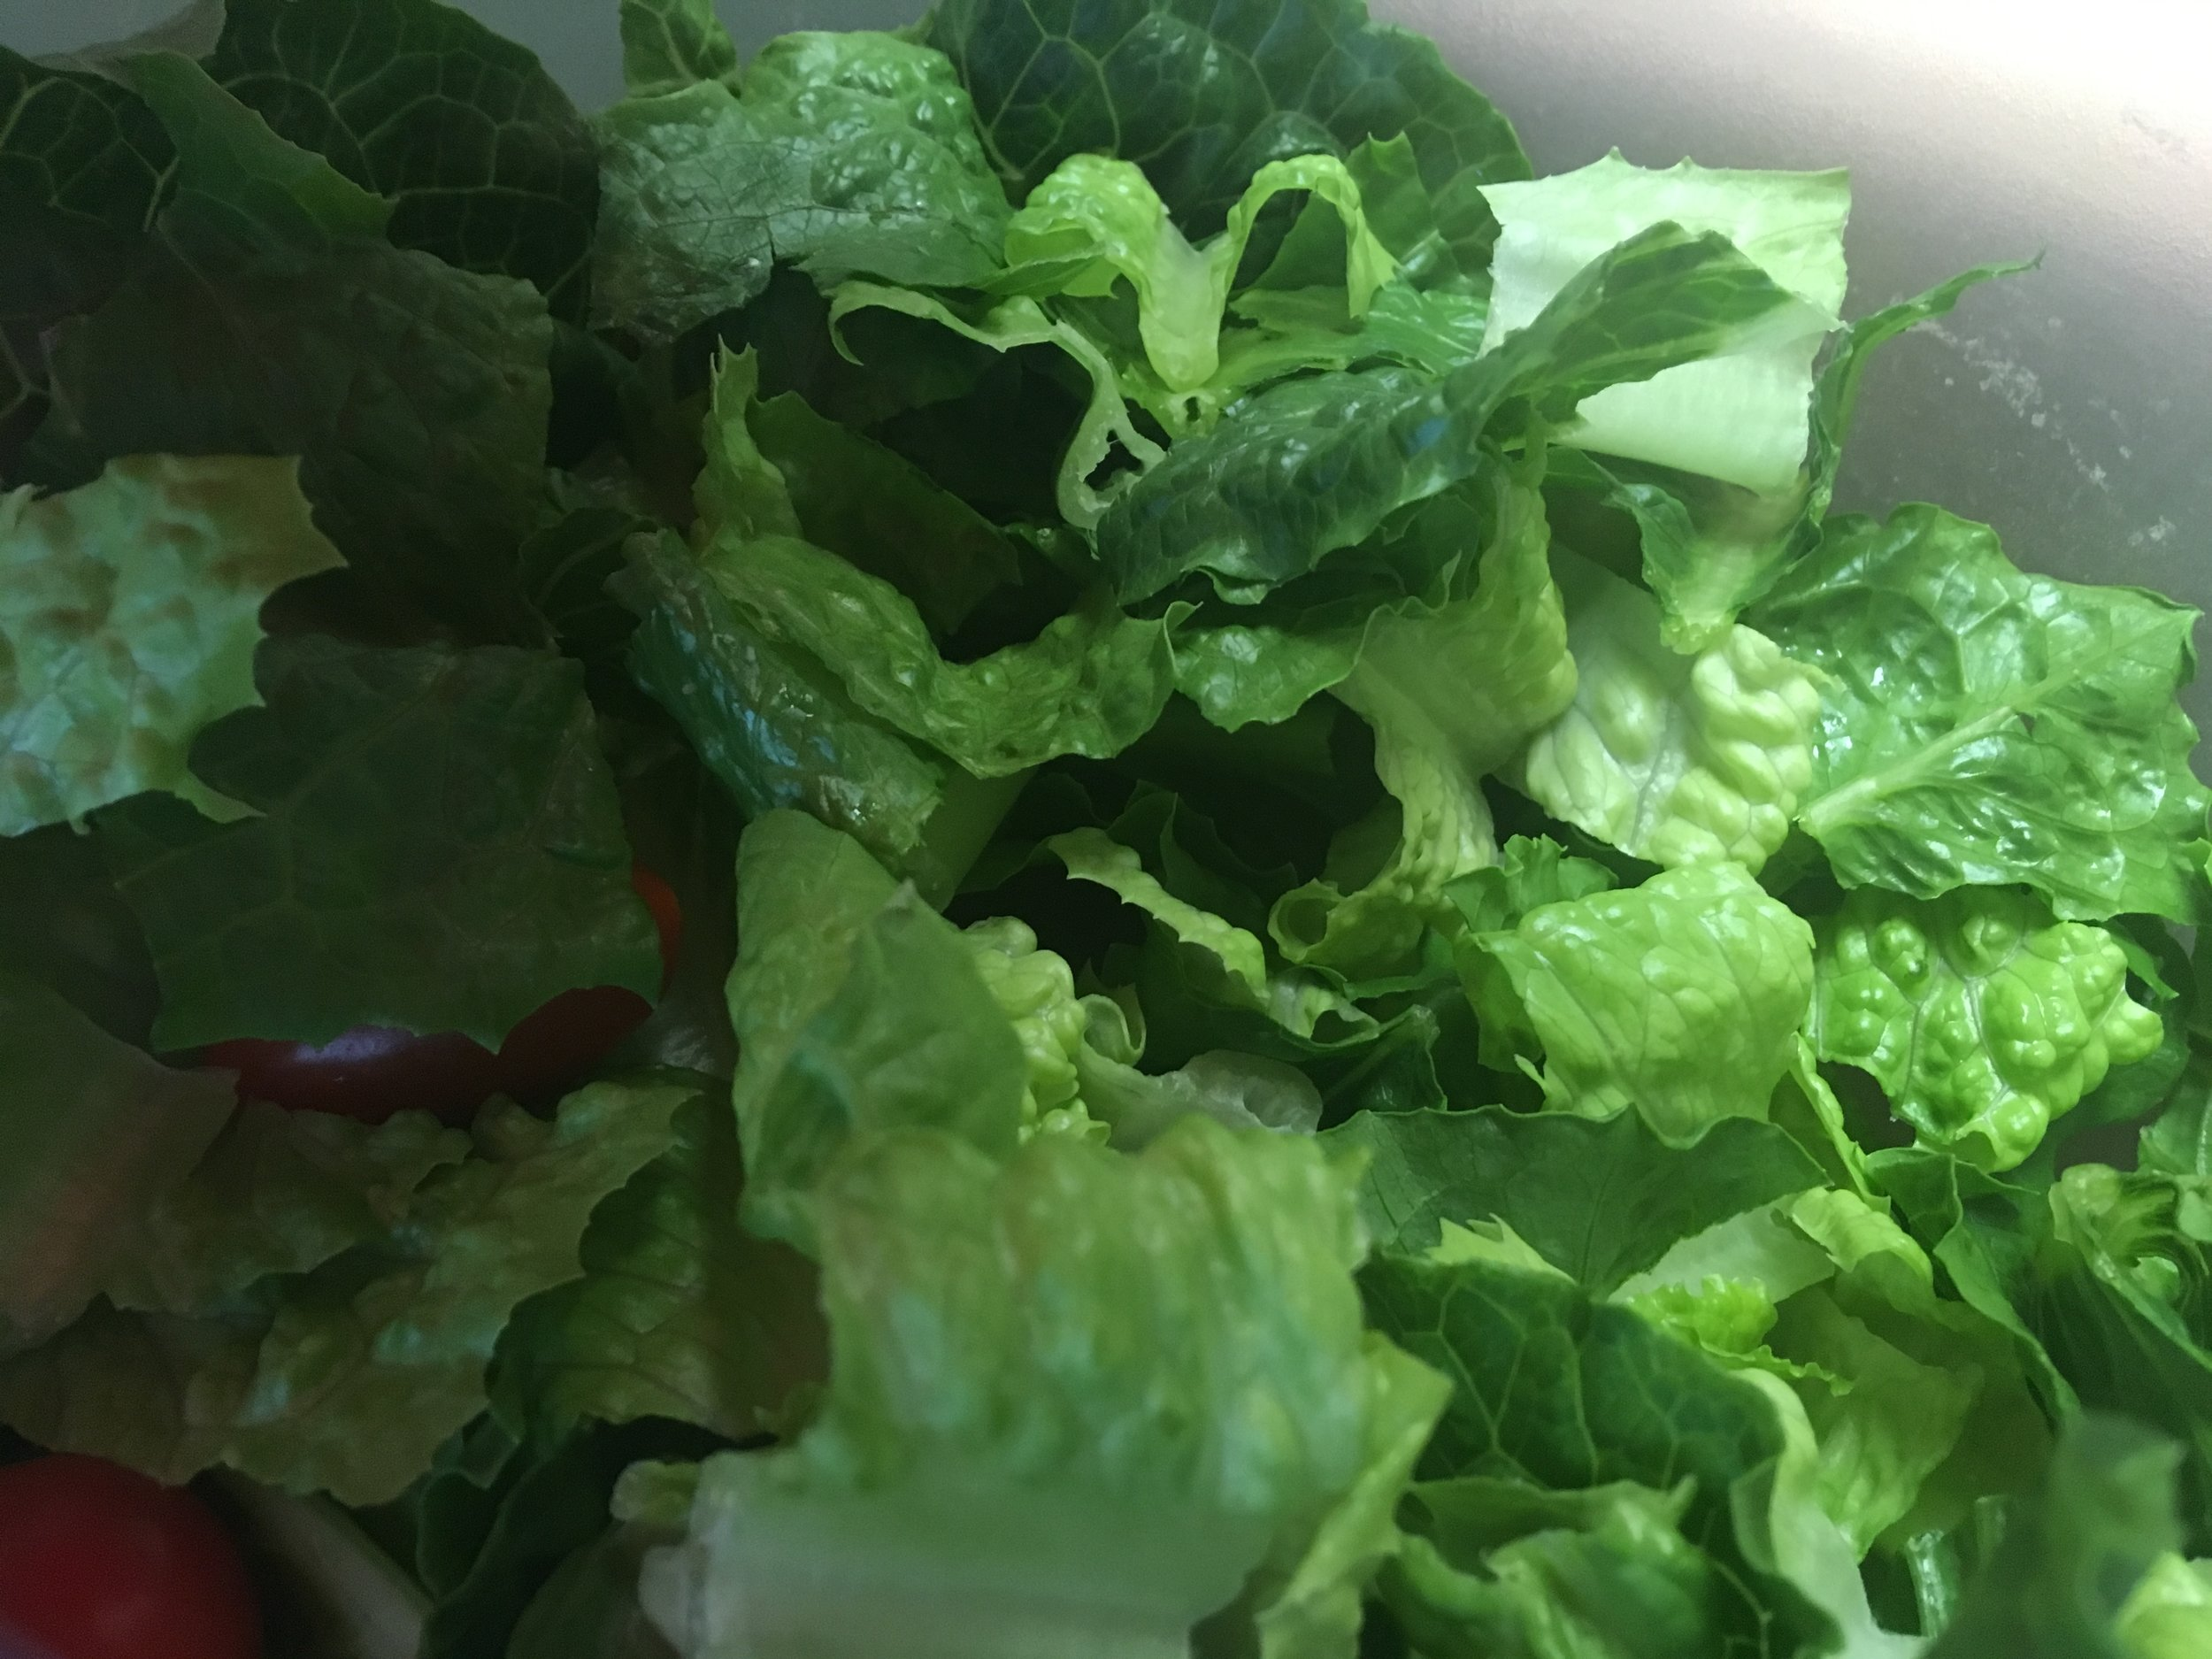 Step 1 - 2 Cups of romaine lettuce